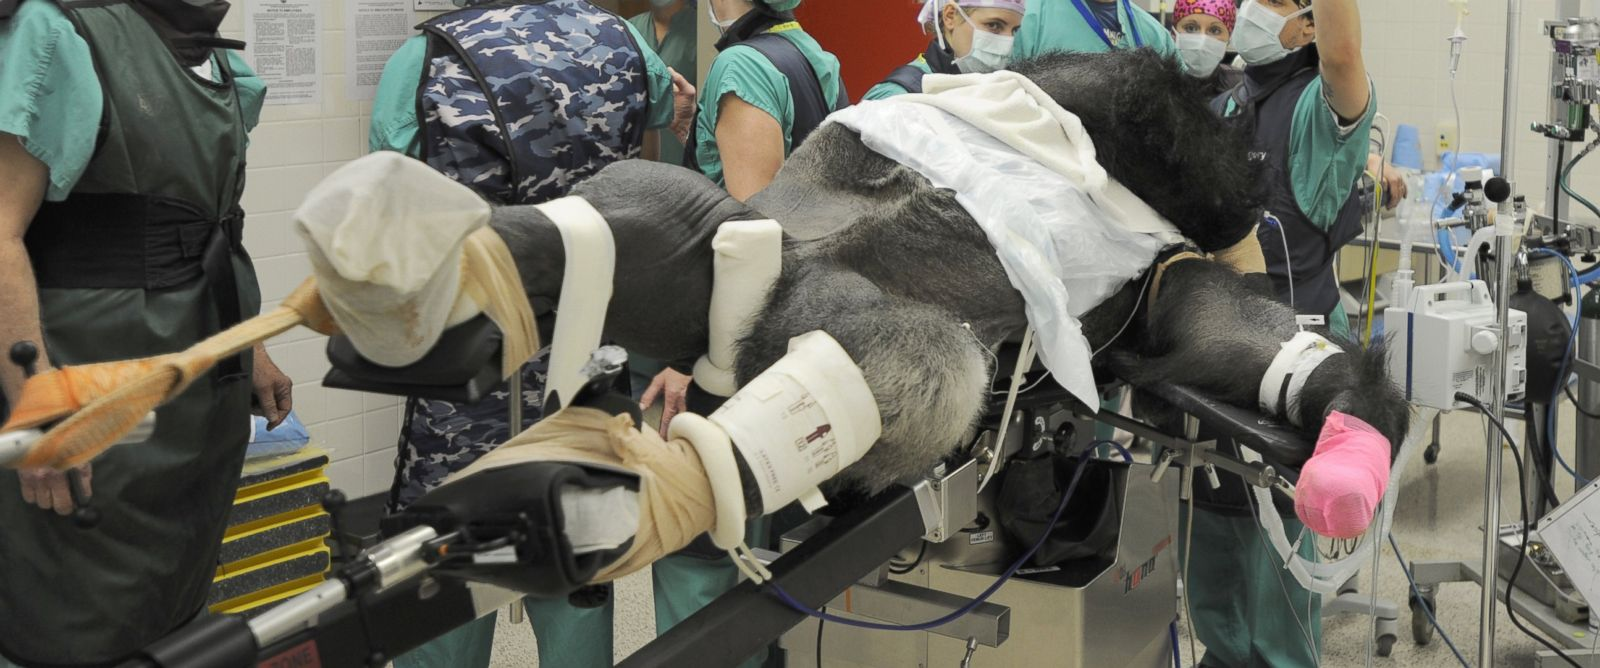 PHOTO: Wanto, a gorilla at the Knoxville Zoo in Tennessee, underwent surgery on Wednesday to fix his broken femur.